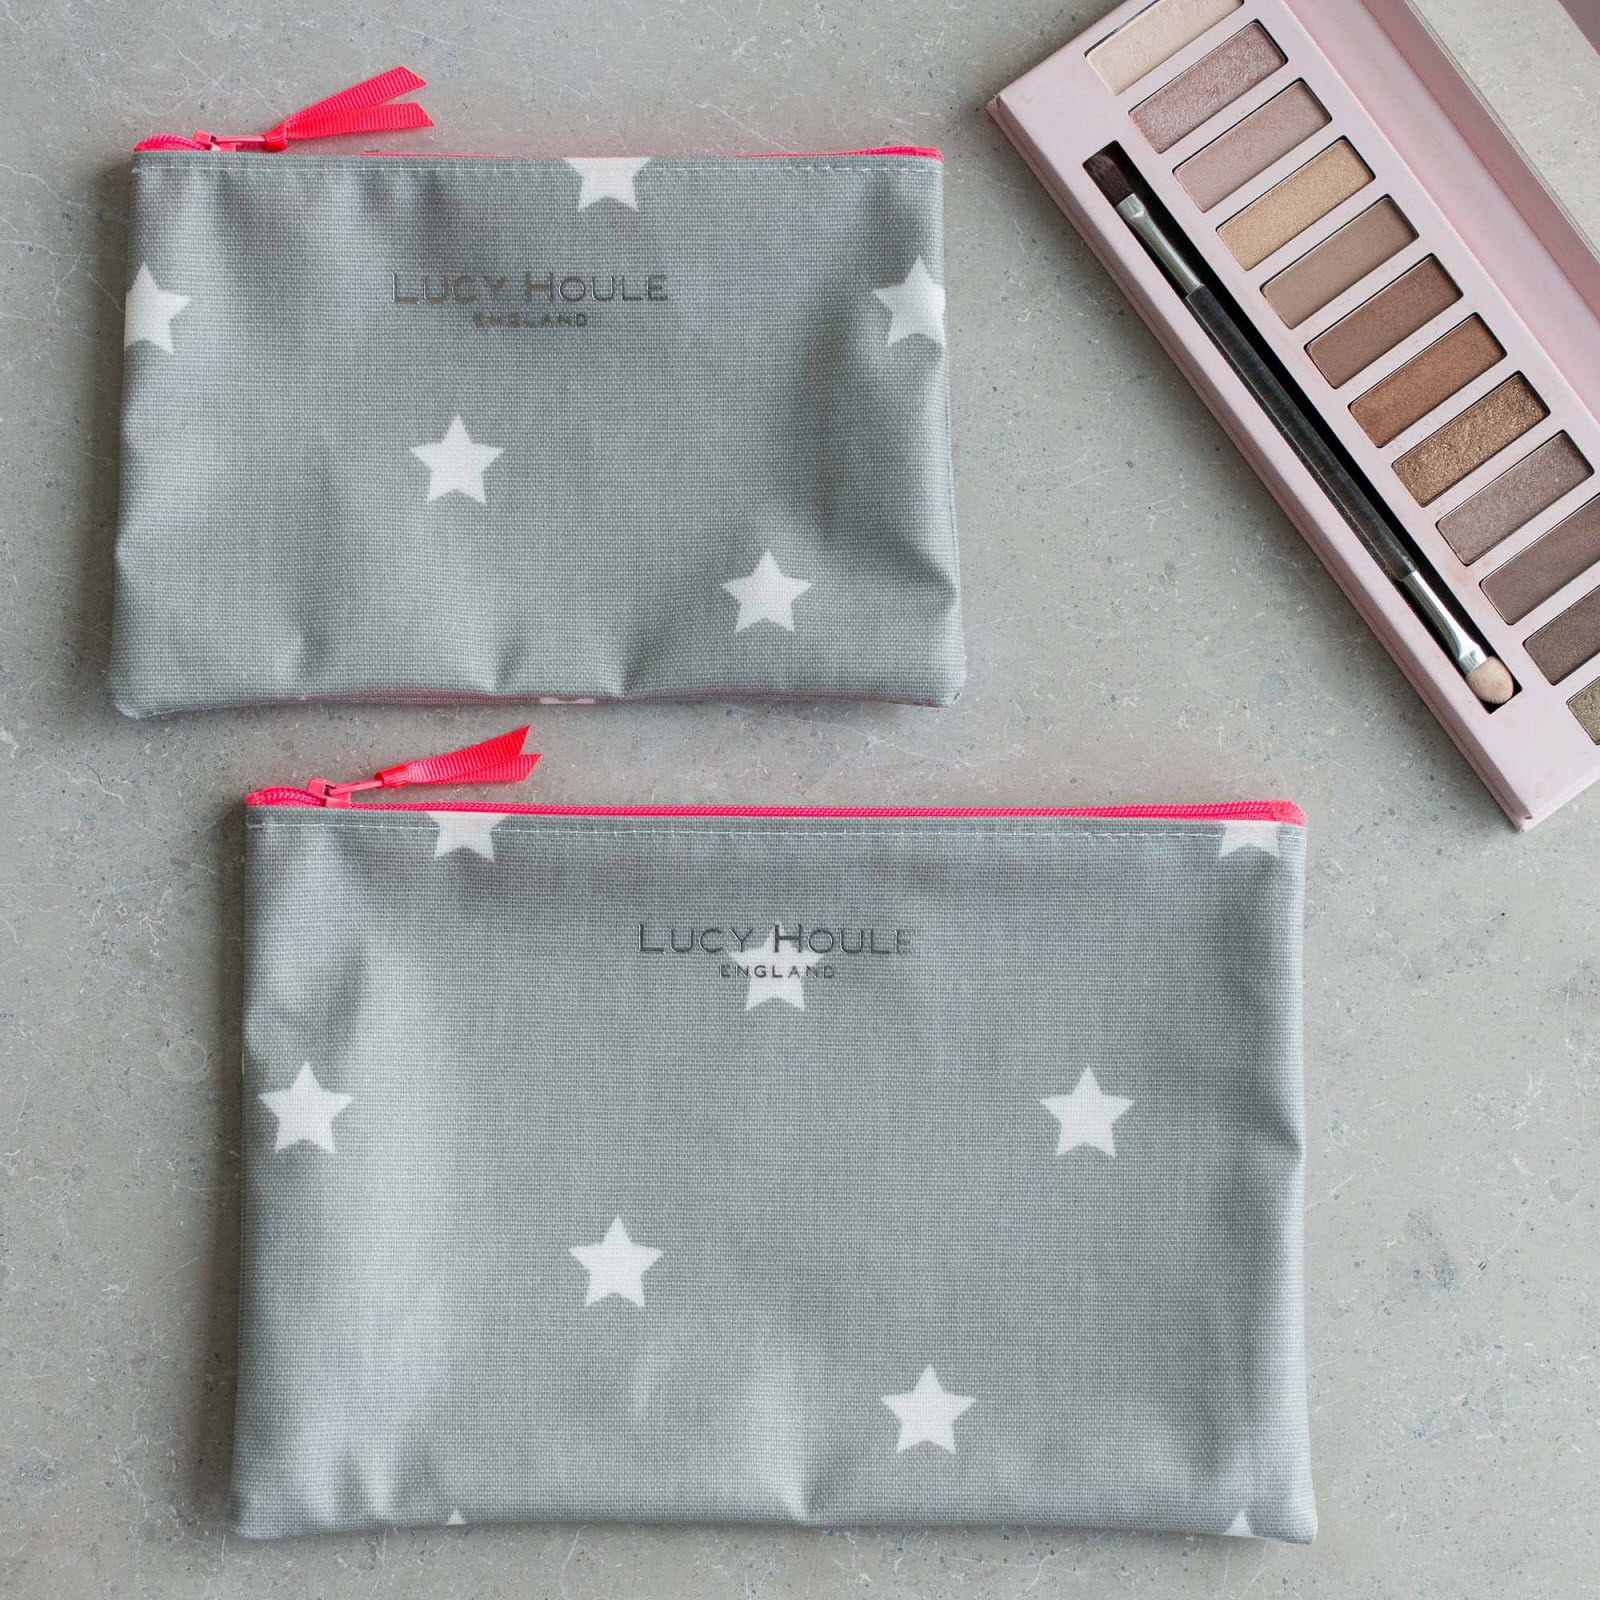 Grey & White Star Make-Up Bag with Pink Neon Zip 'Limited Edition'